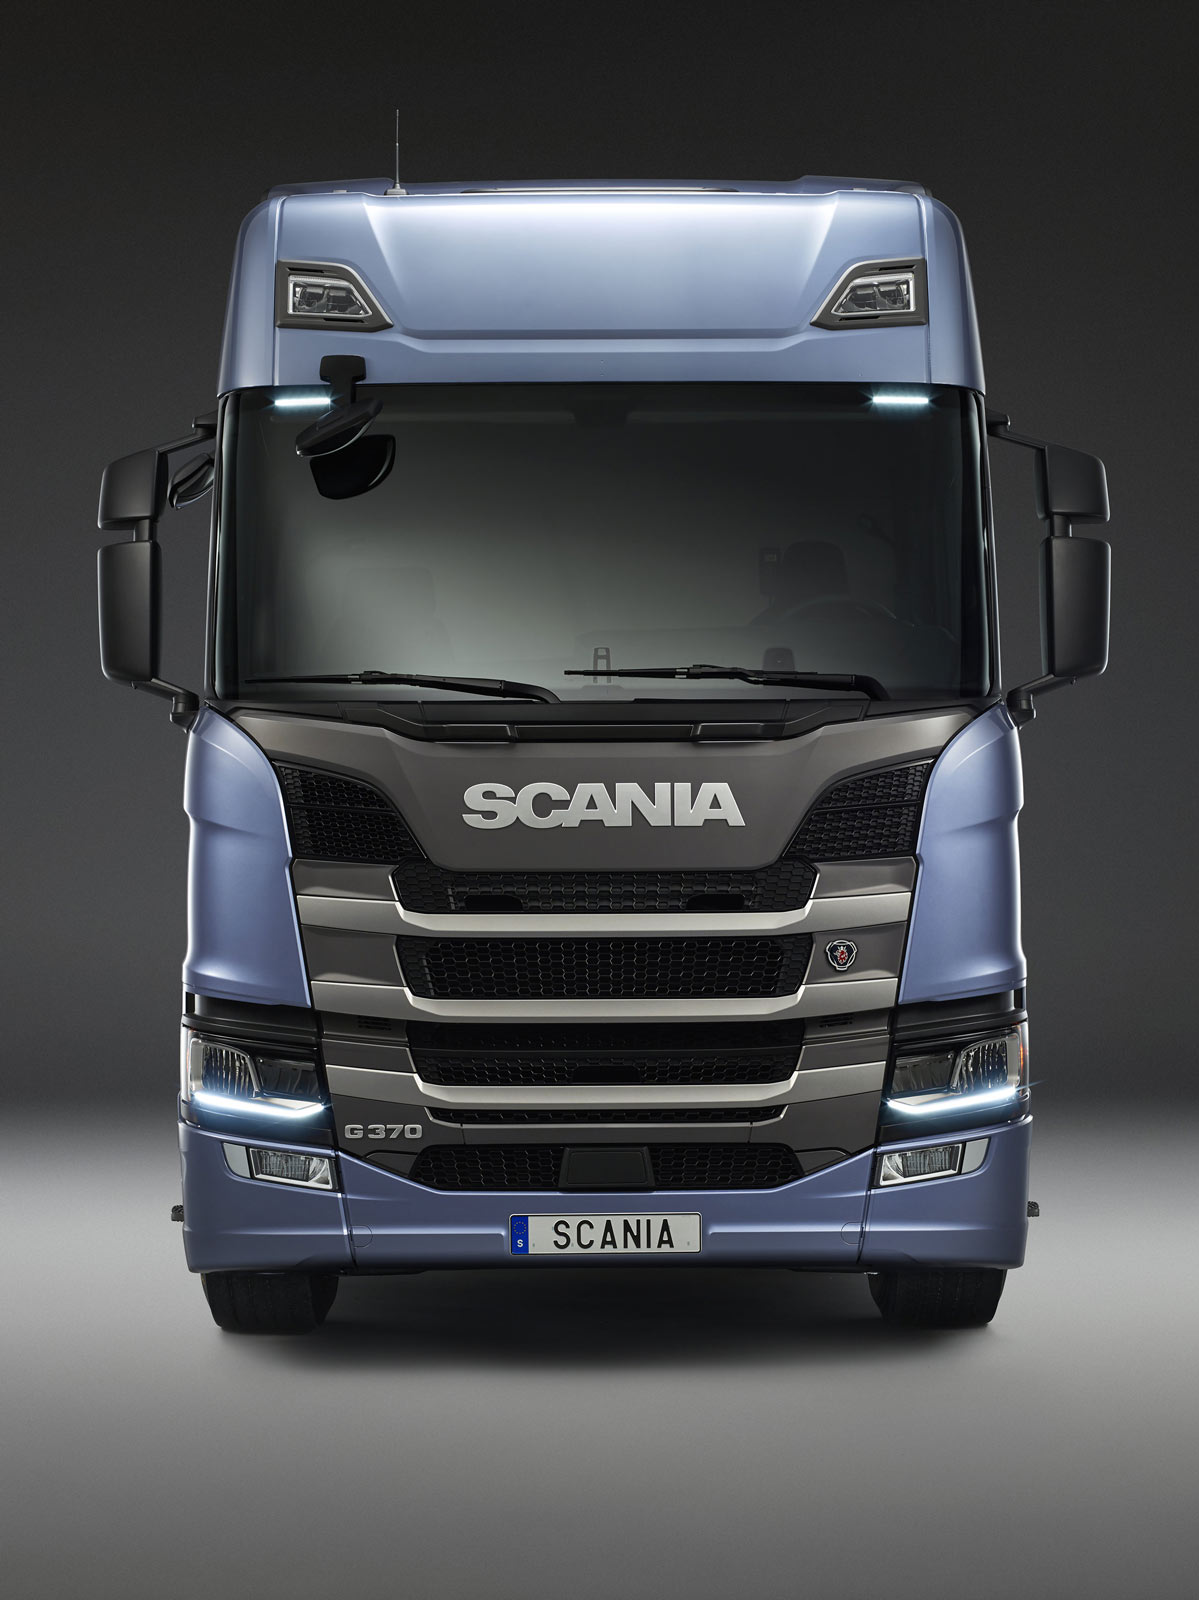 scania g series 4th generation commercial vehicles trucksplanet. Black Bedroom Furniture Sets. Home Design Ideas